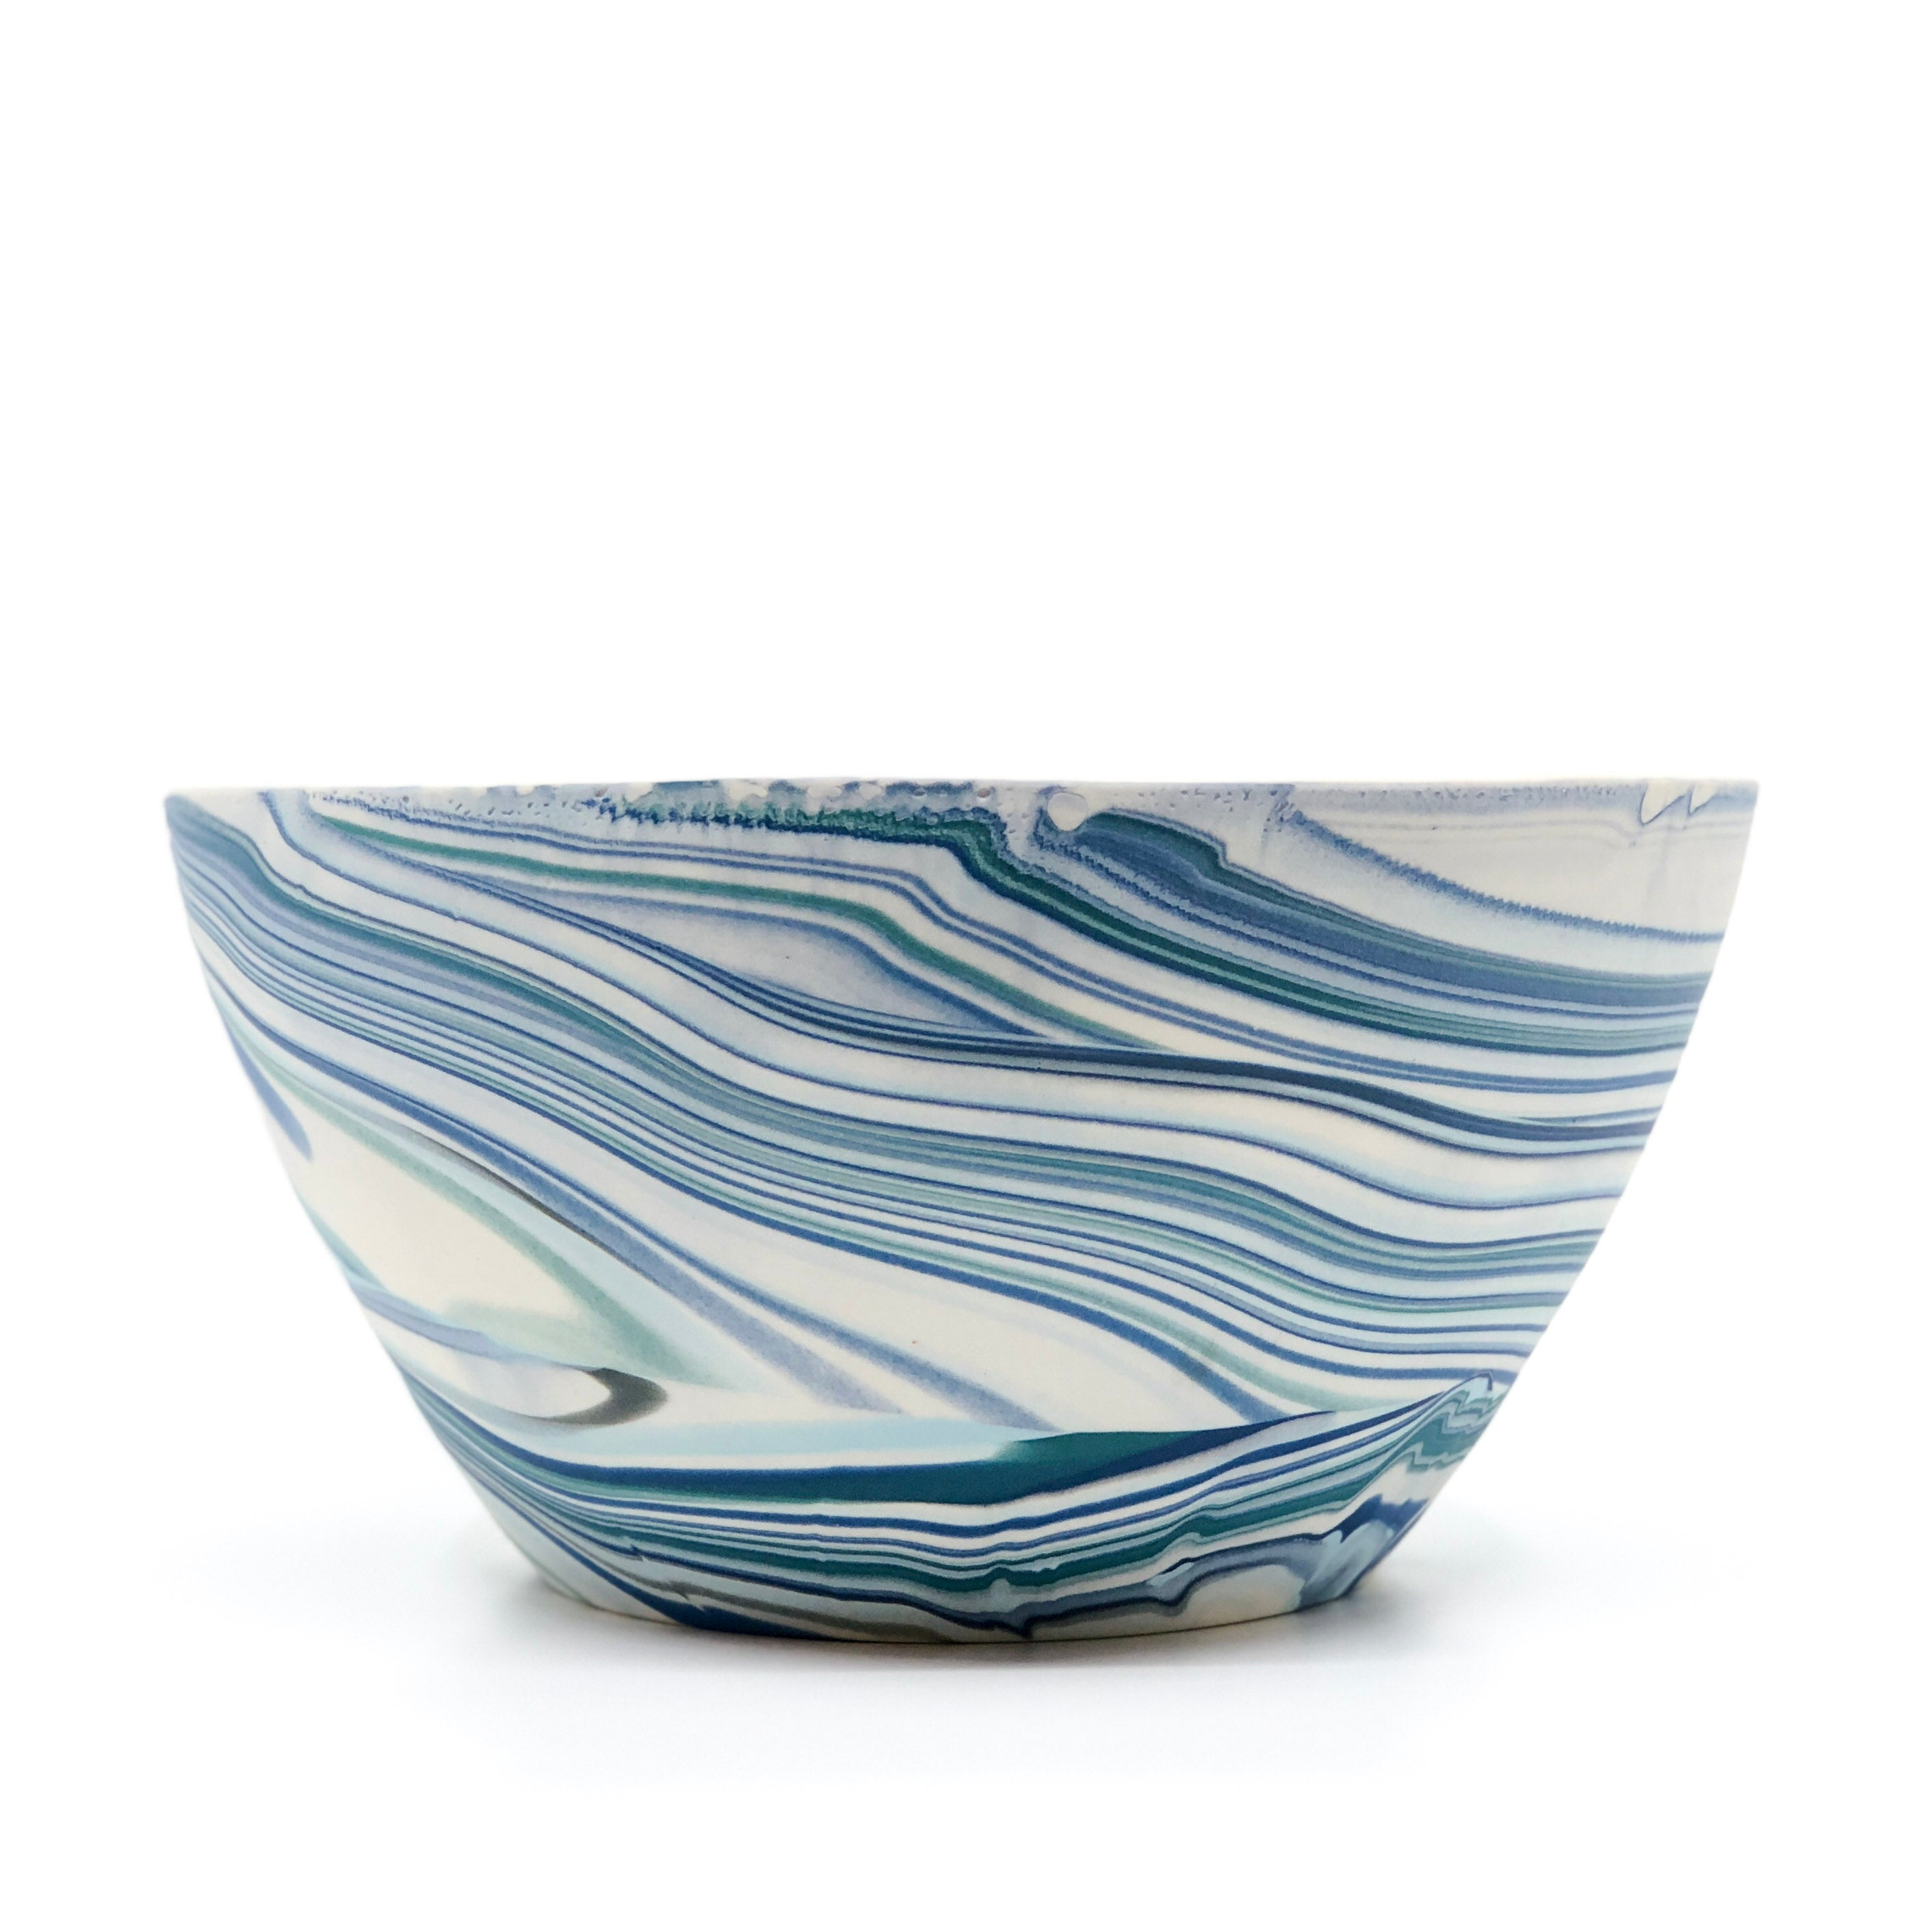 Strata Series Serving Bowl